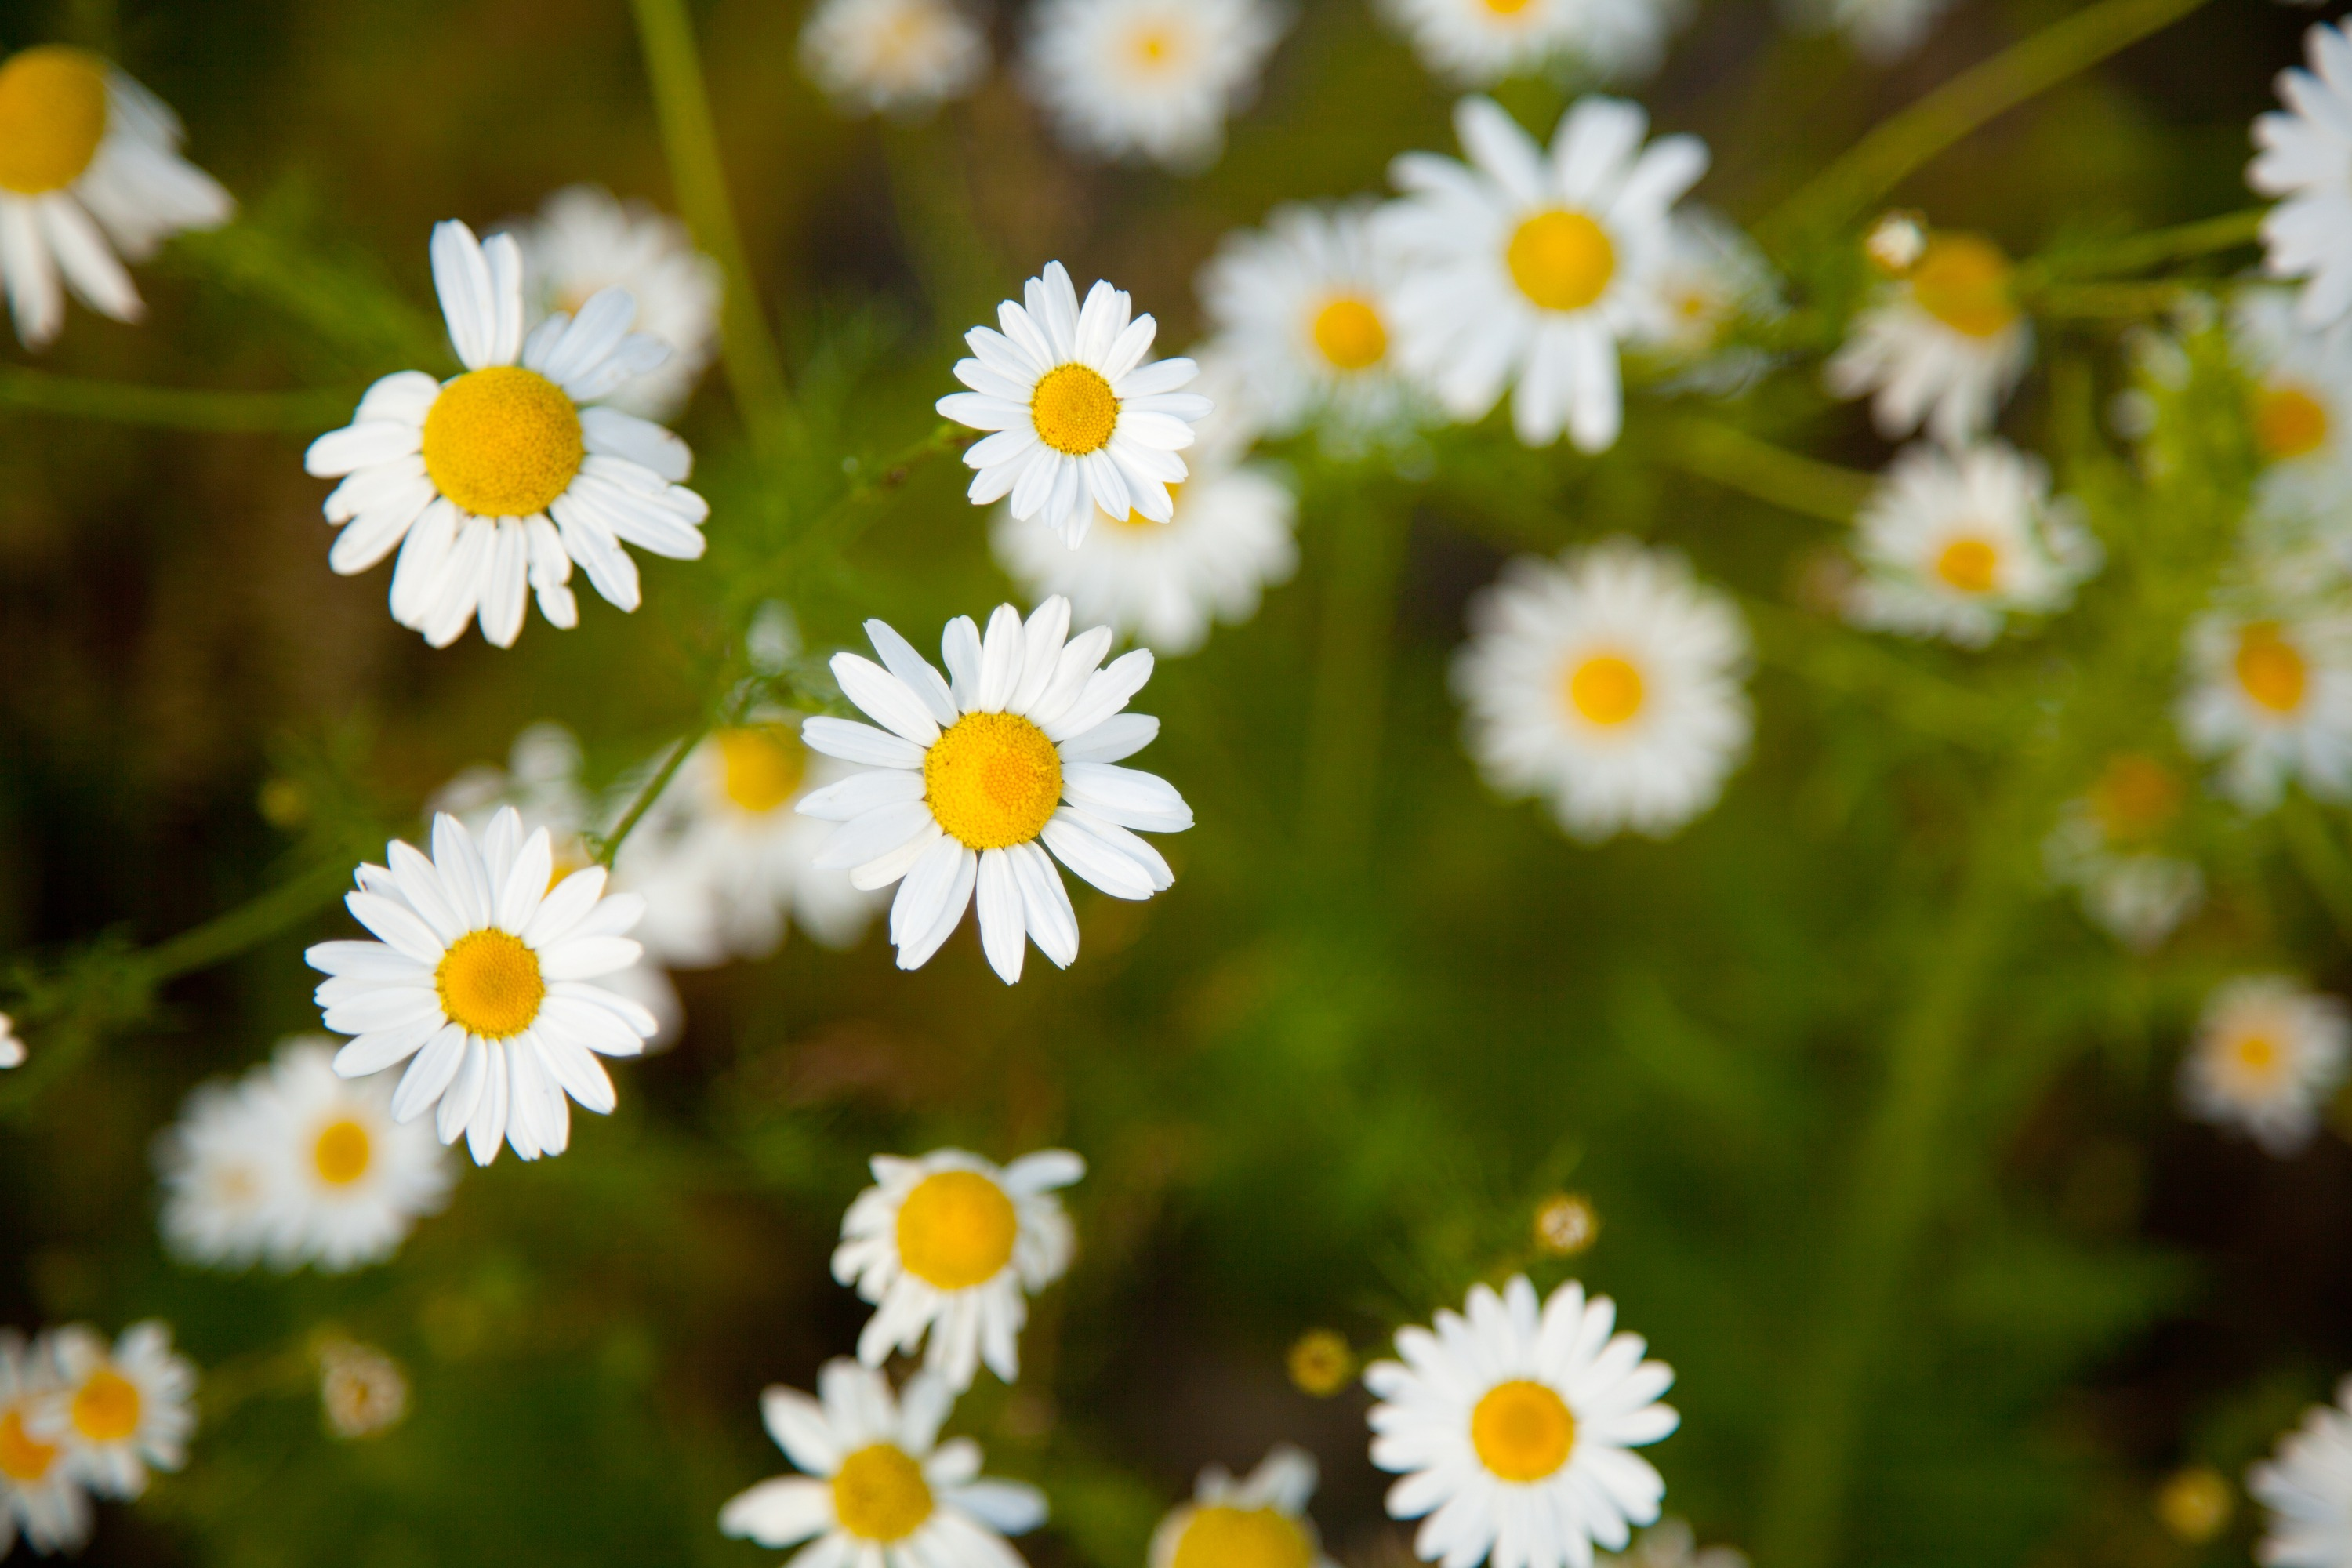 Chamomile flowers growing in a field